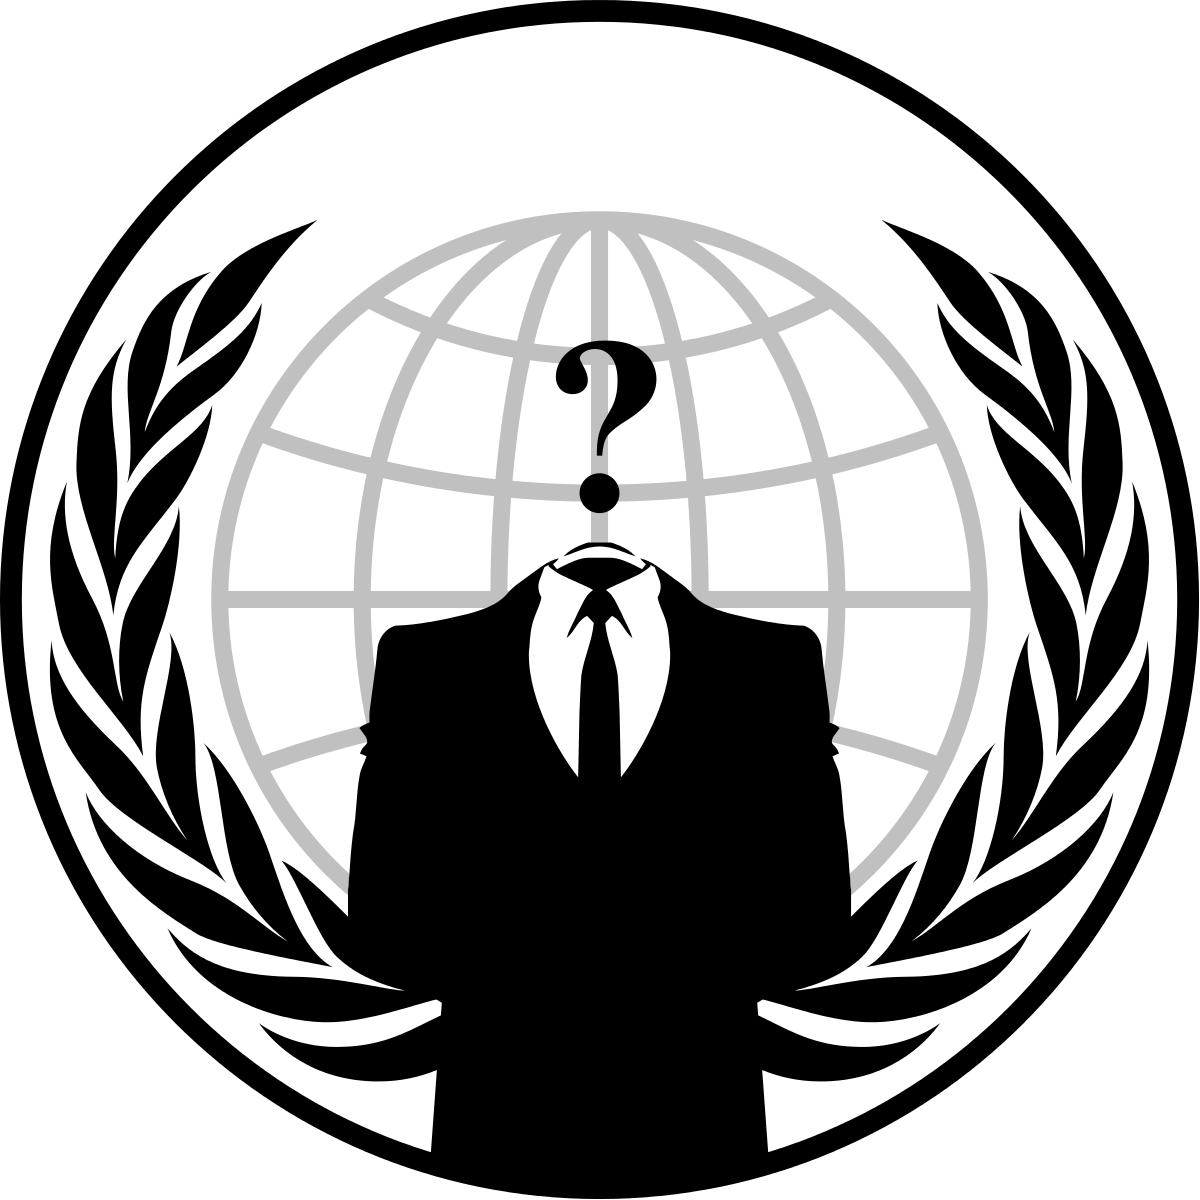 hacker, anonymous group wikipedia #25931